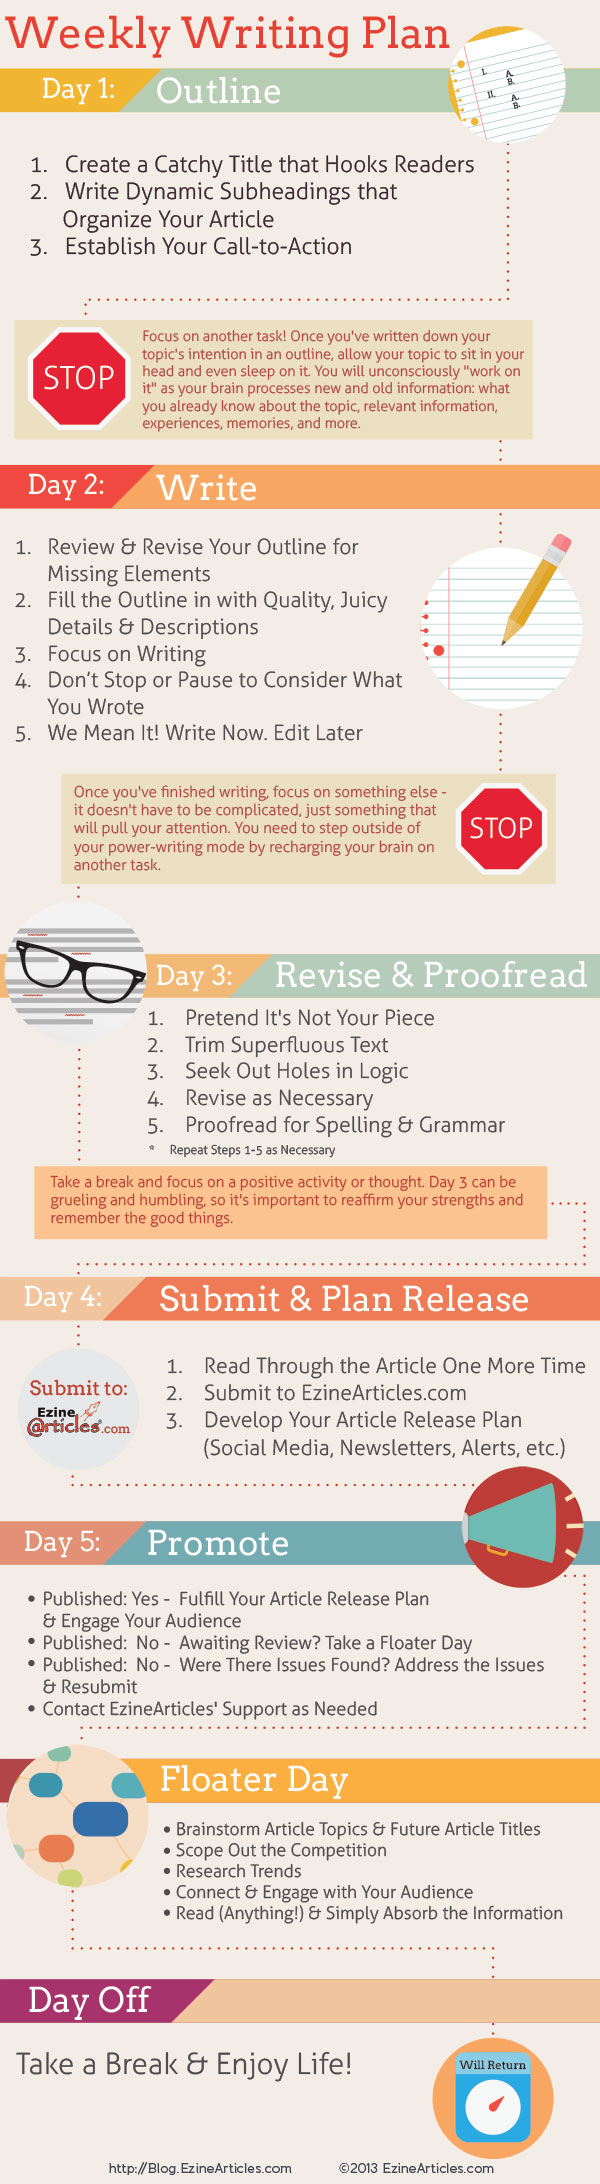 Infographic for a Weekly Writing Plan